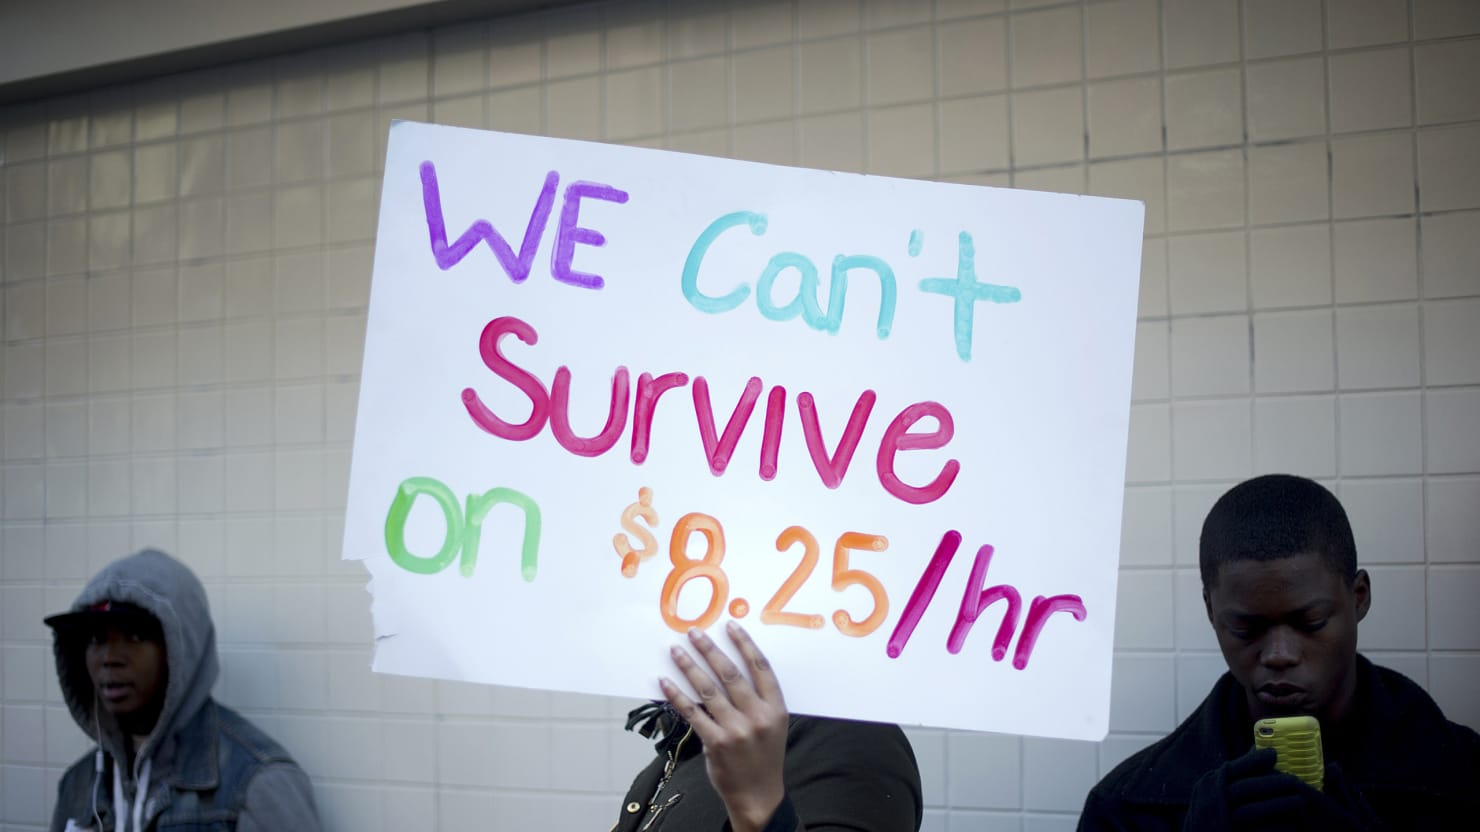 After Years of Waiting, Millions of Workers Are About to Get a Raise